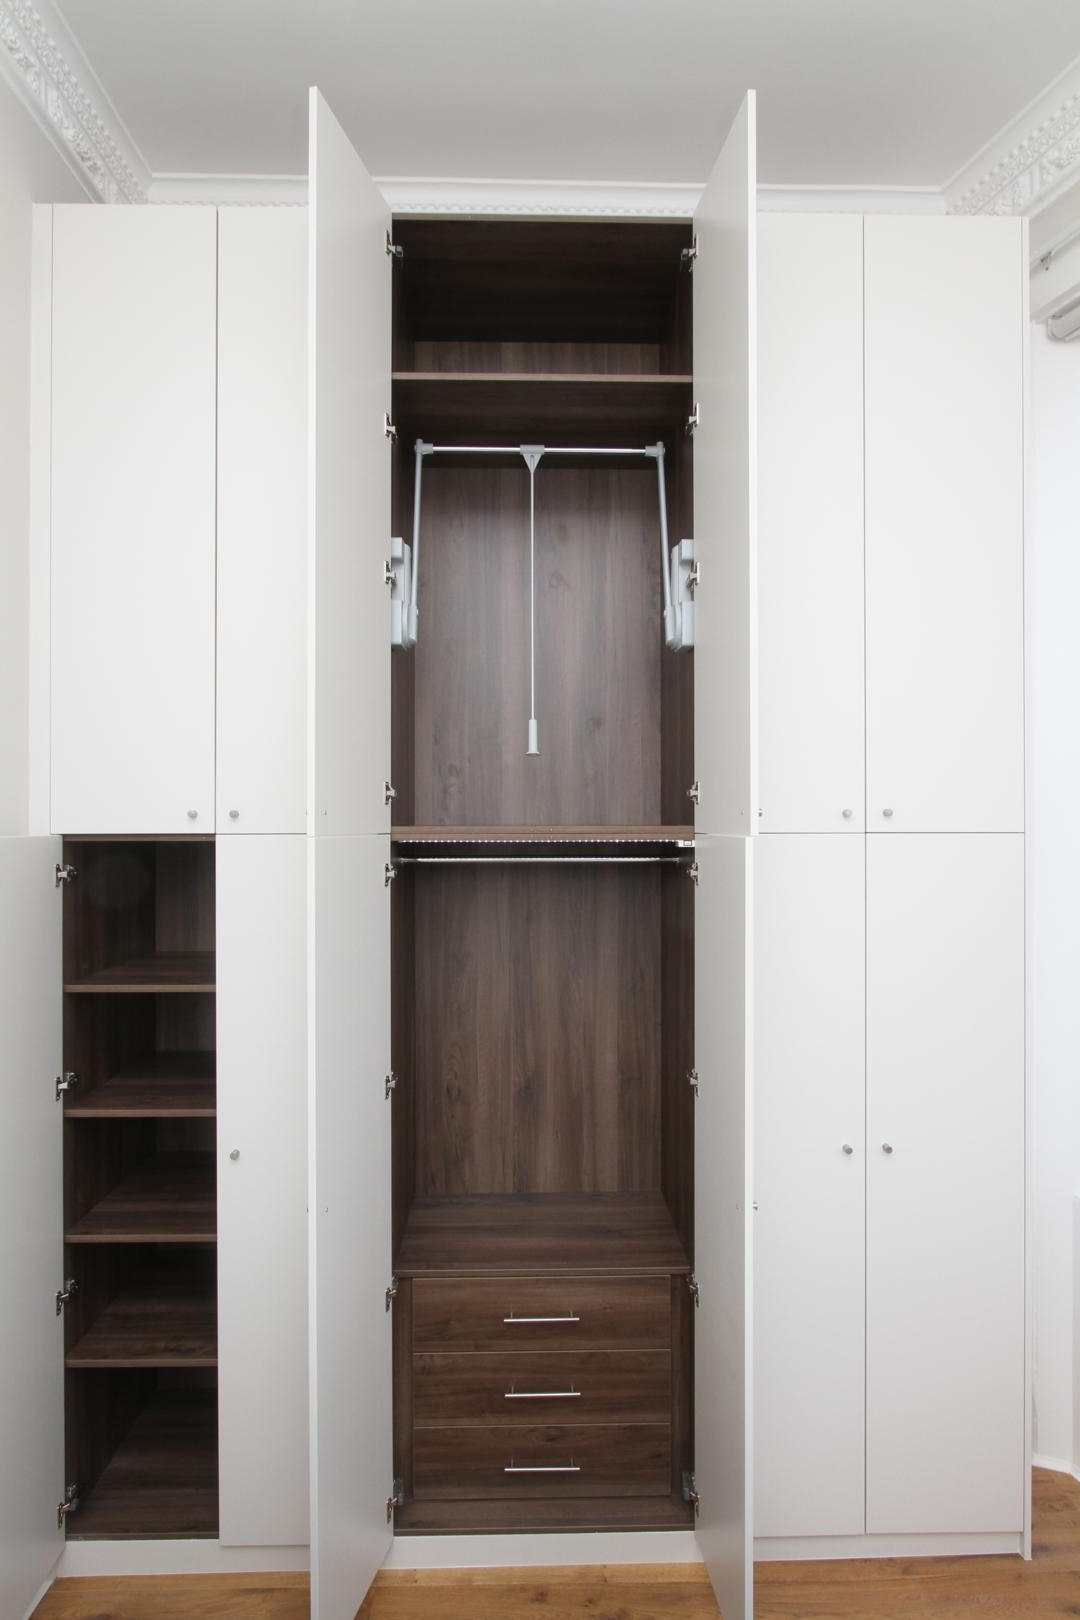 Tall Wardrobes Regarding Famous Fitted Wardrobes – Fitted And Fancyempatika (View 11 of 15)